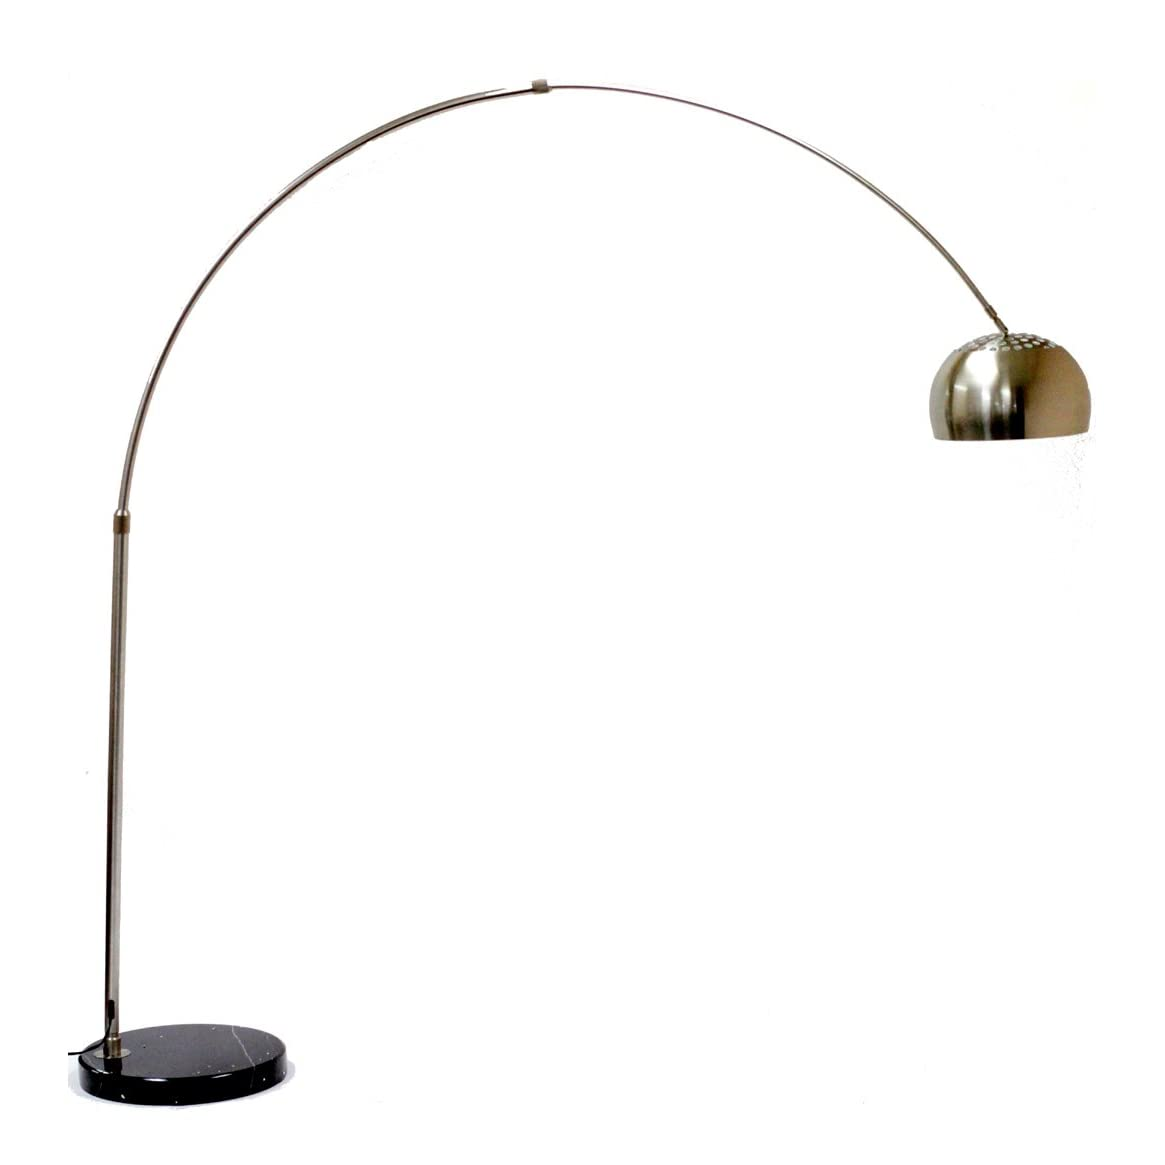 Arco style lamp with black round base modern lamp new ebay - Arco floor lamp reproduction ...